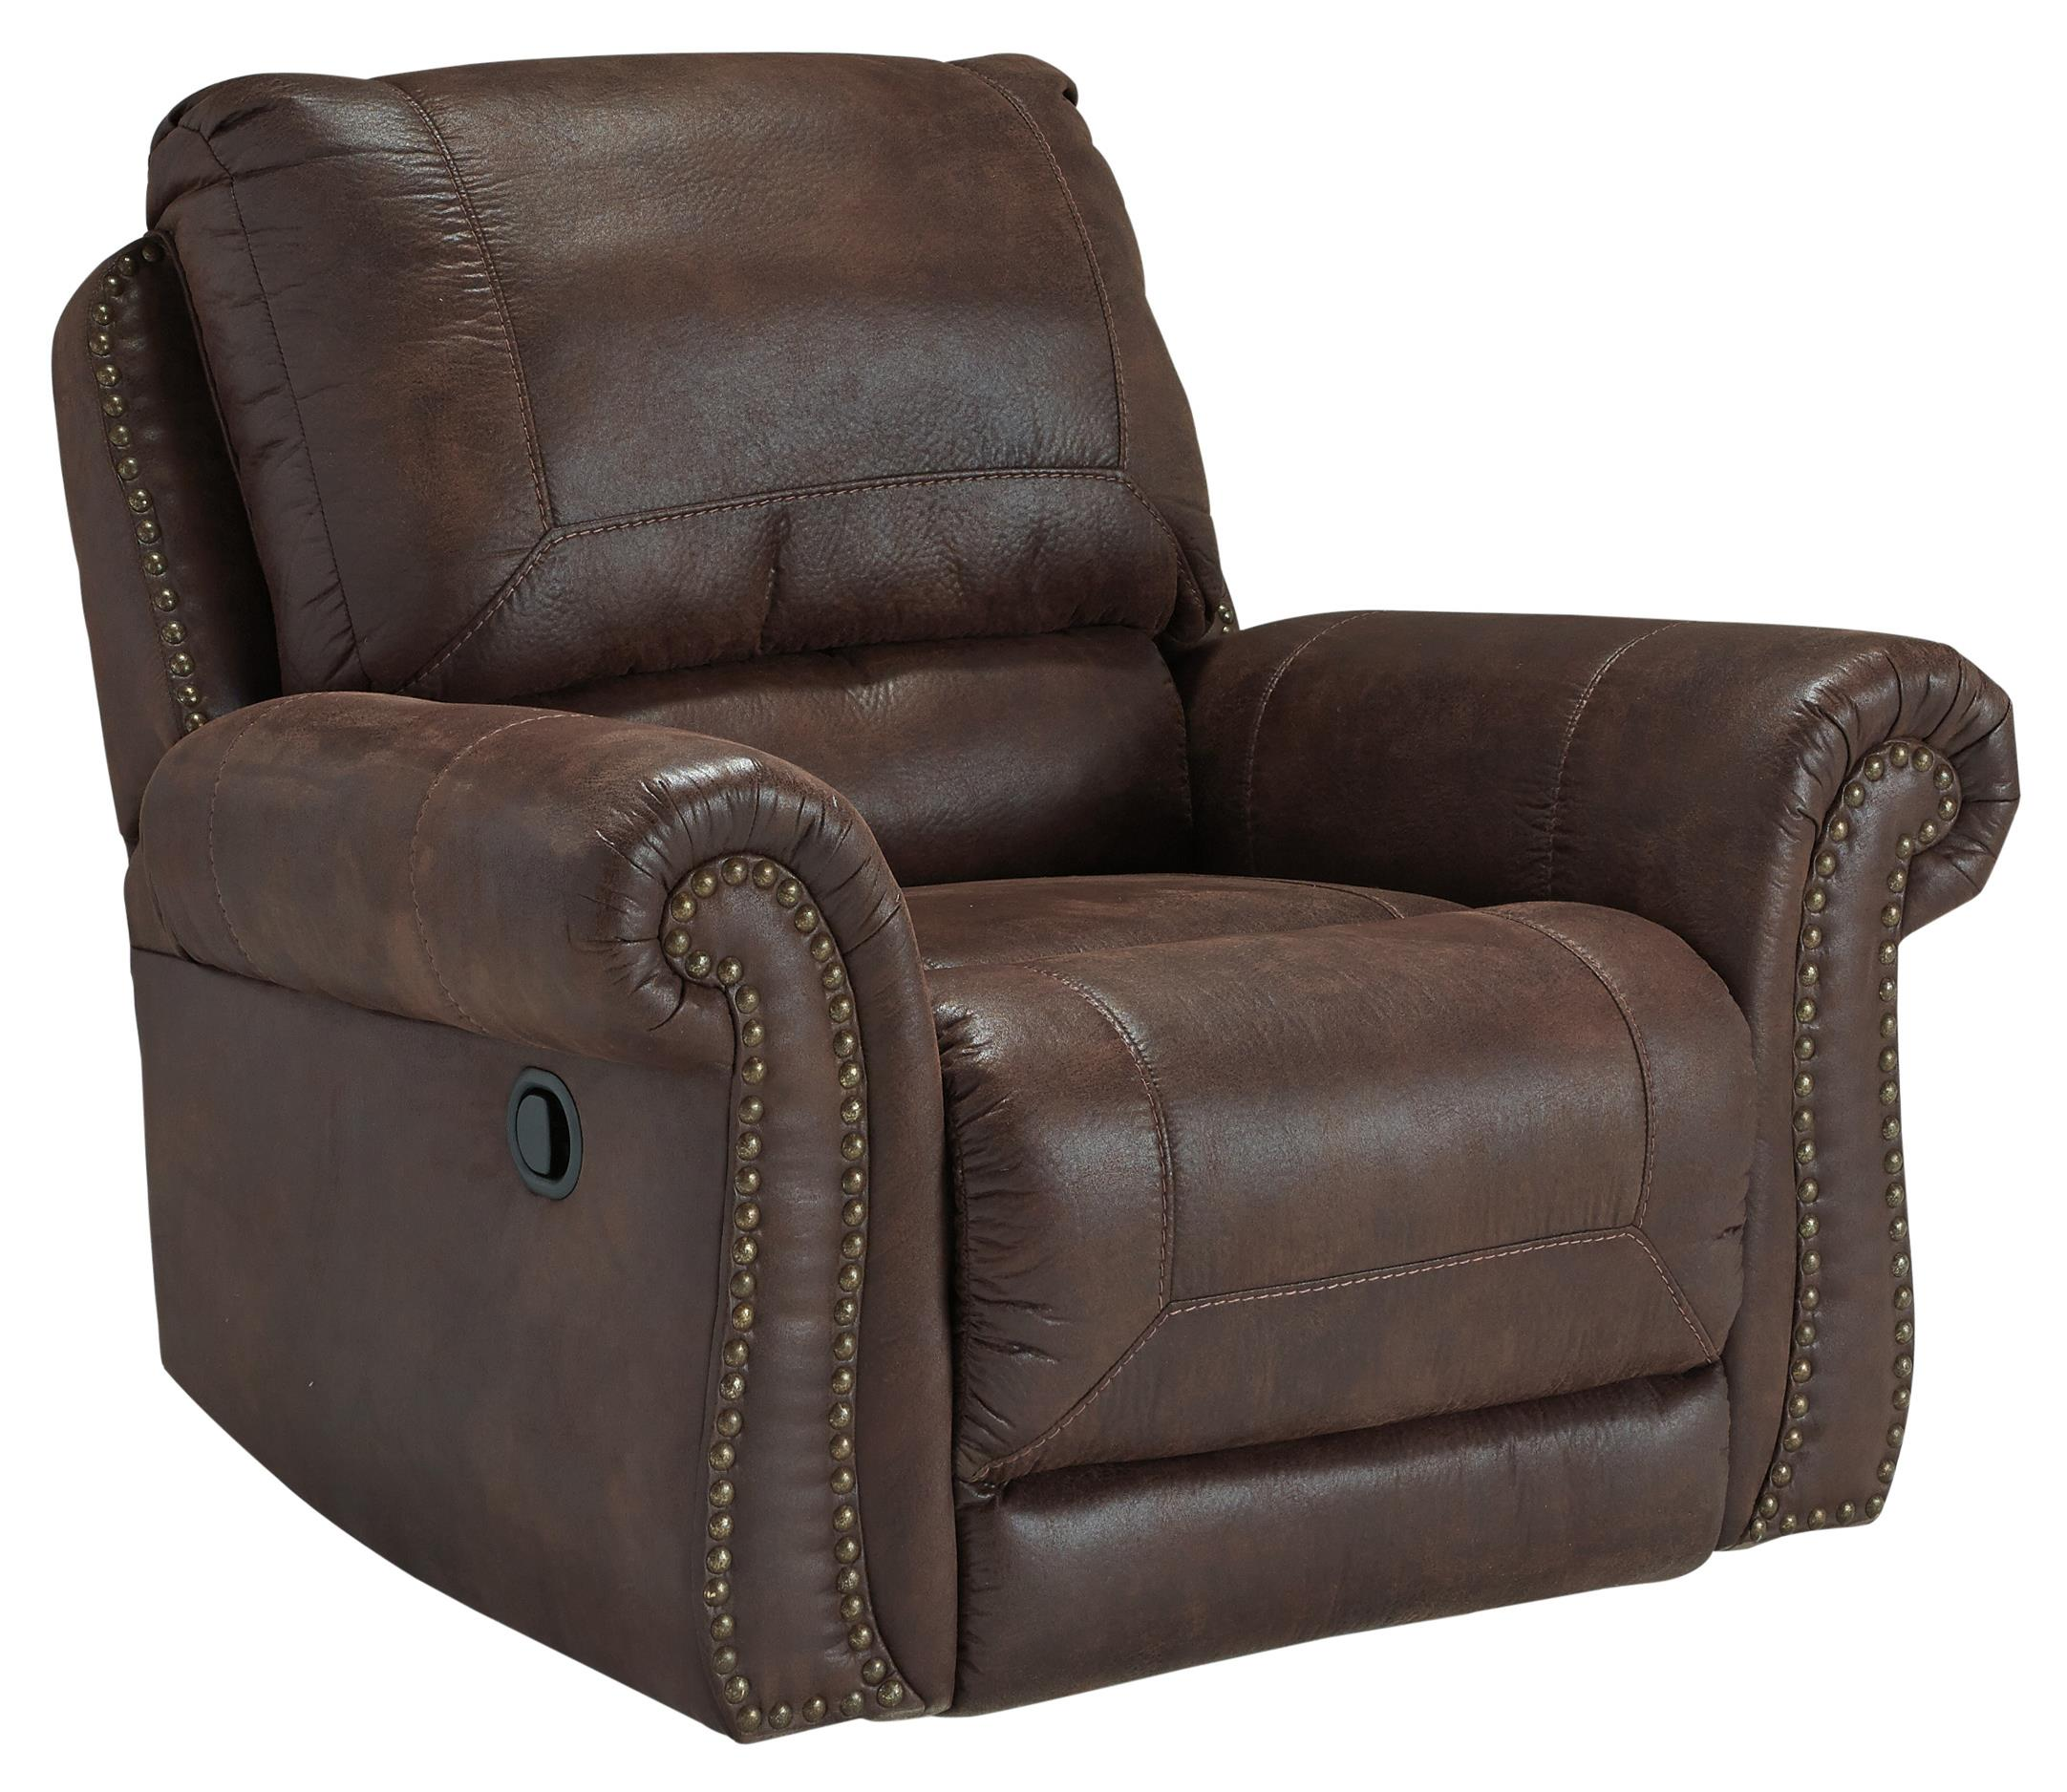 Ashley/Benchcraft Breville Rocker Recliner - Item Number: 8000325